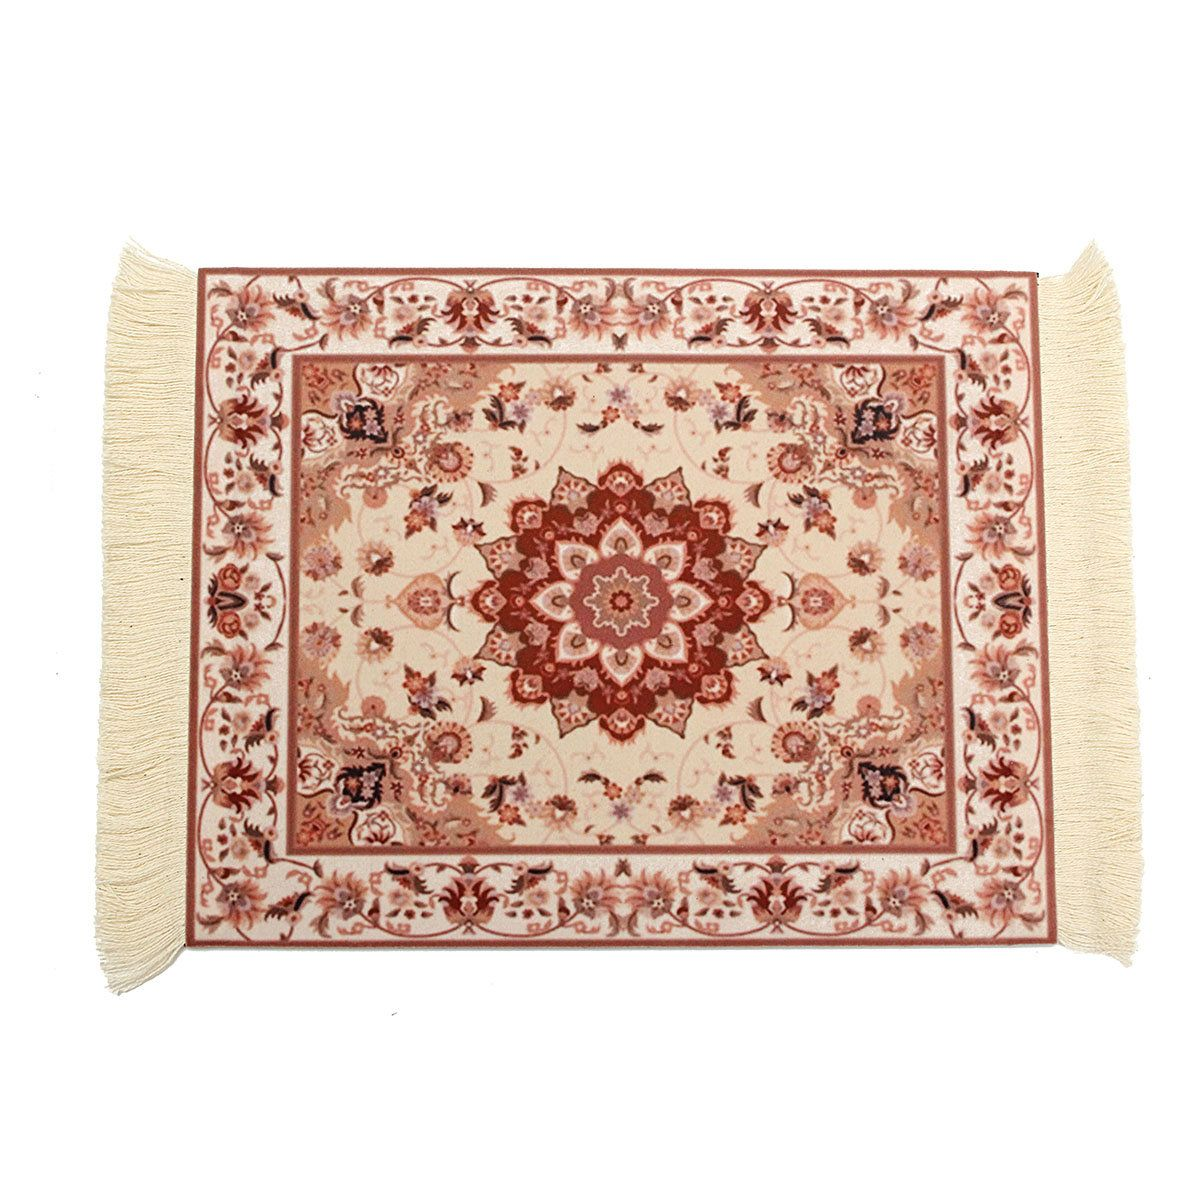 28x18cm Persian Style Mini Woven Rug Mouse Pad Carpet Mousemat With Fringe